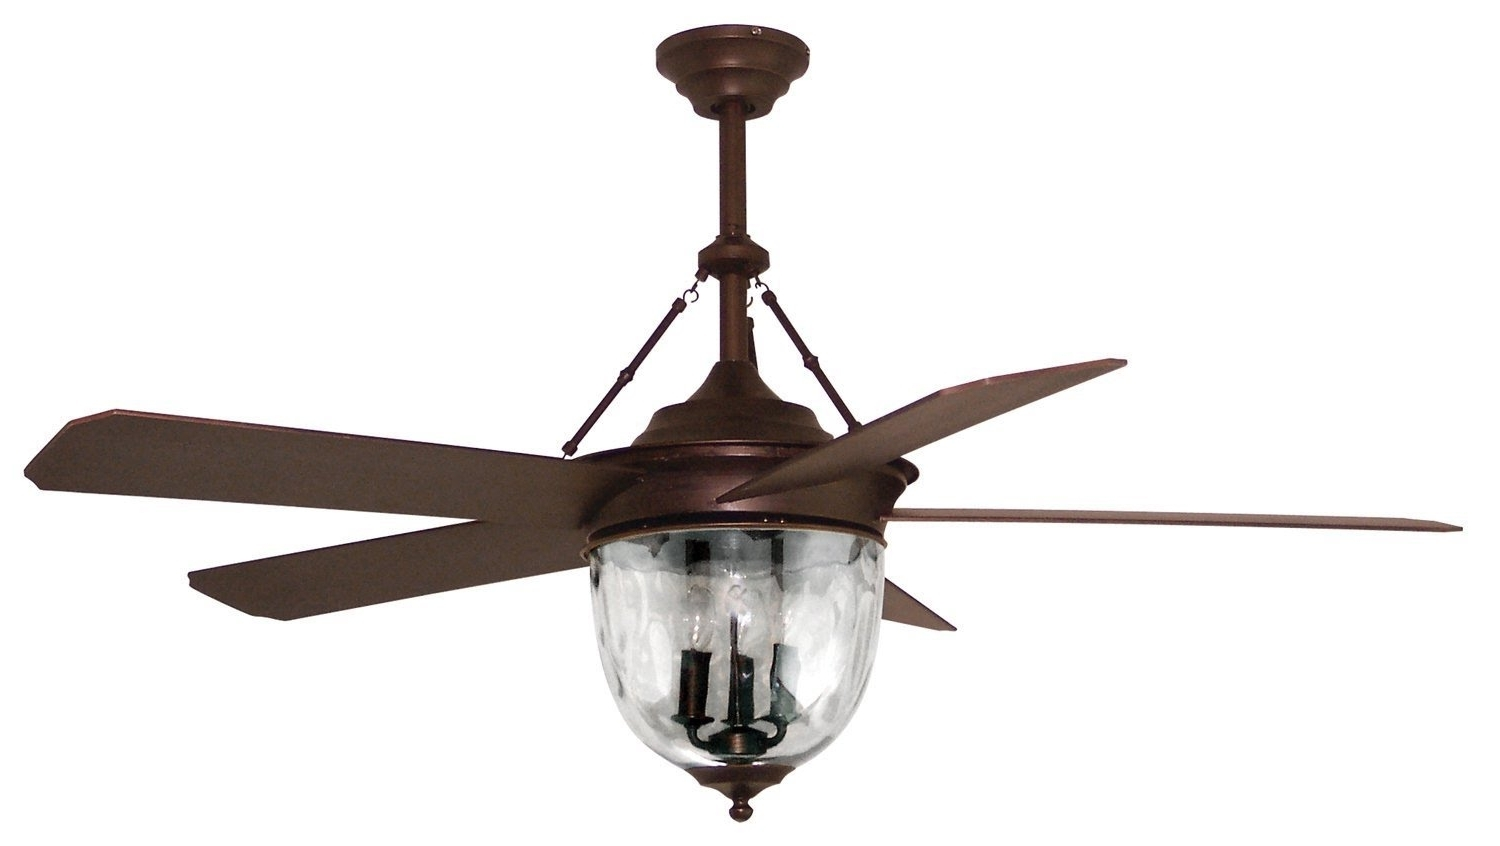 Most Recently Released Outdoor Ceiling Fan With Light And Remote Fresh Lowes Ceiling Fans Regarding Outdoor Ceiling Fans With Lights And Remote Control (View 12 of 20)